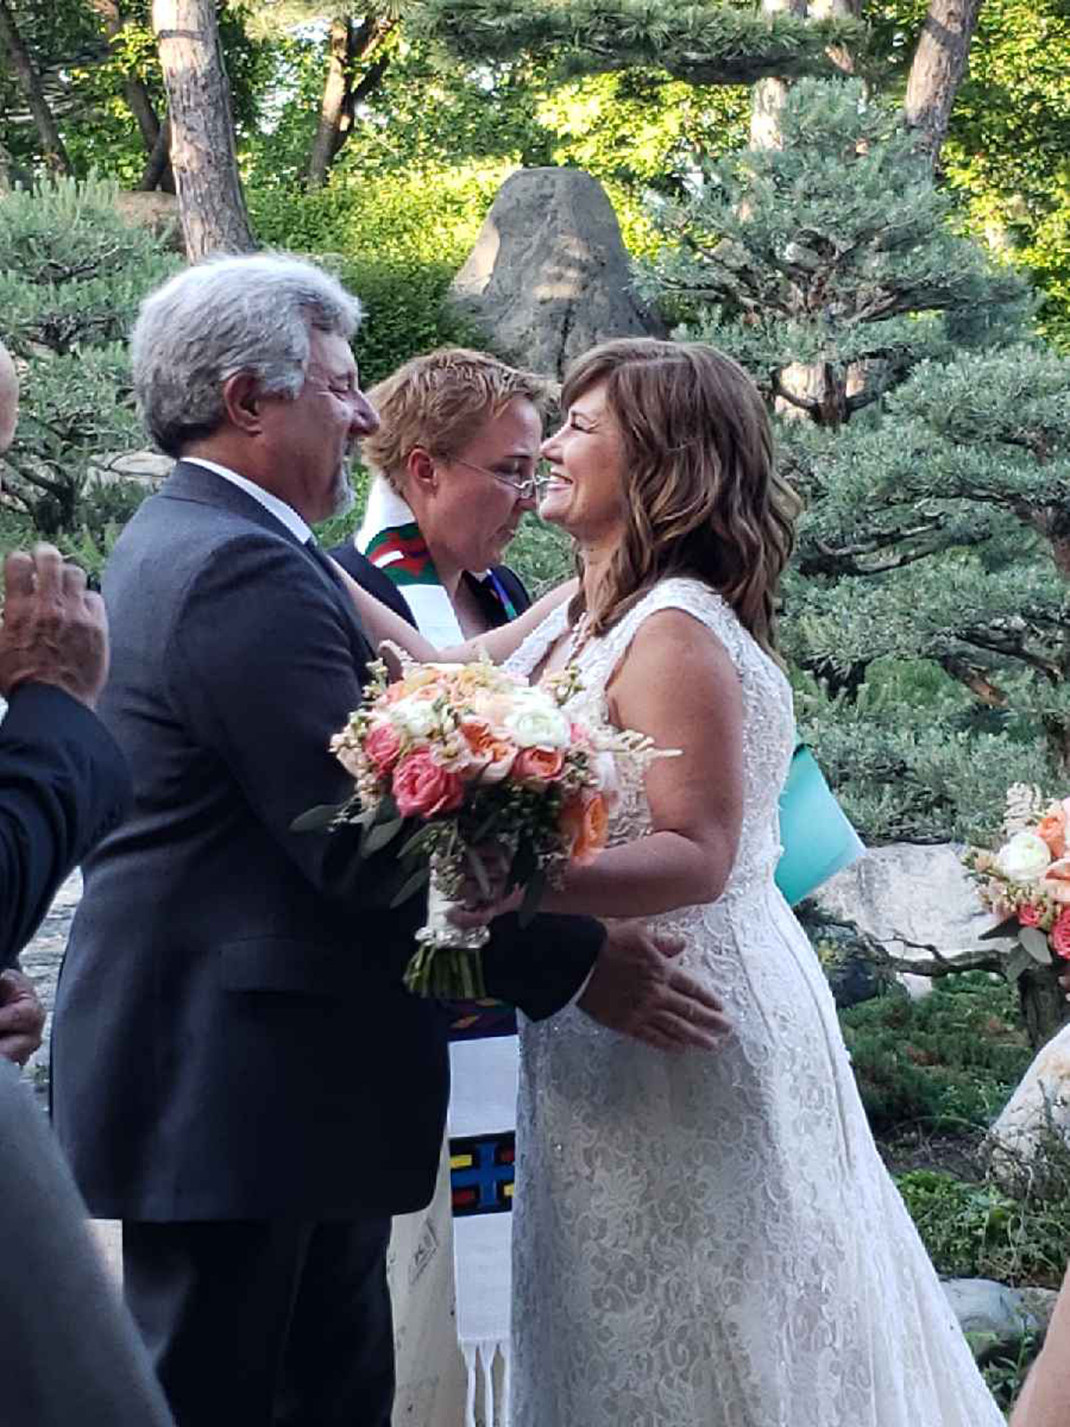 Friends Marry After Promising They Would If They Were Single at 50 Courtesy: Kimberley Dean